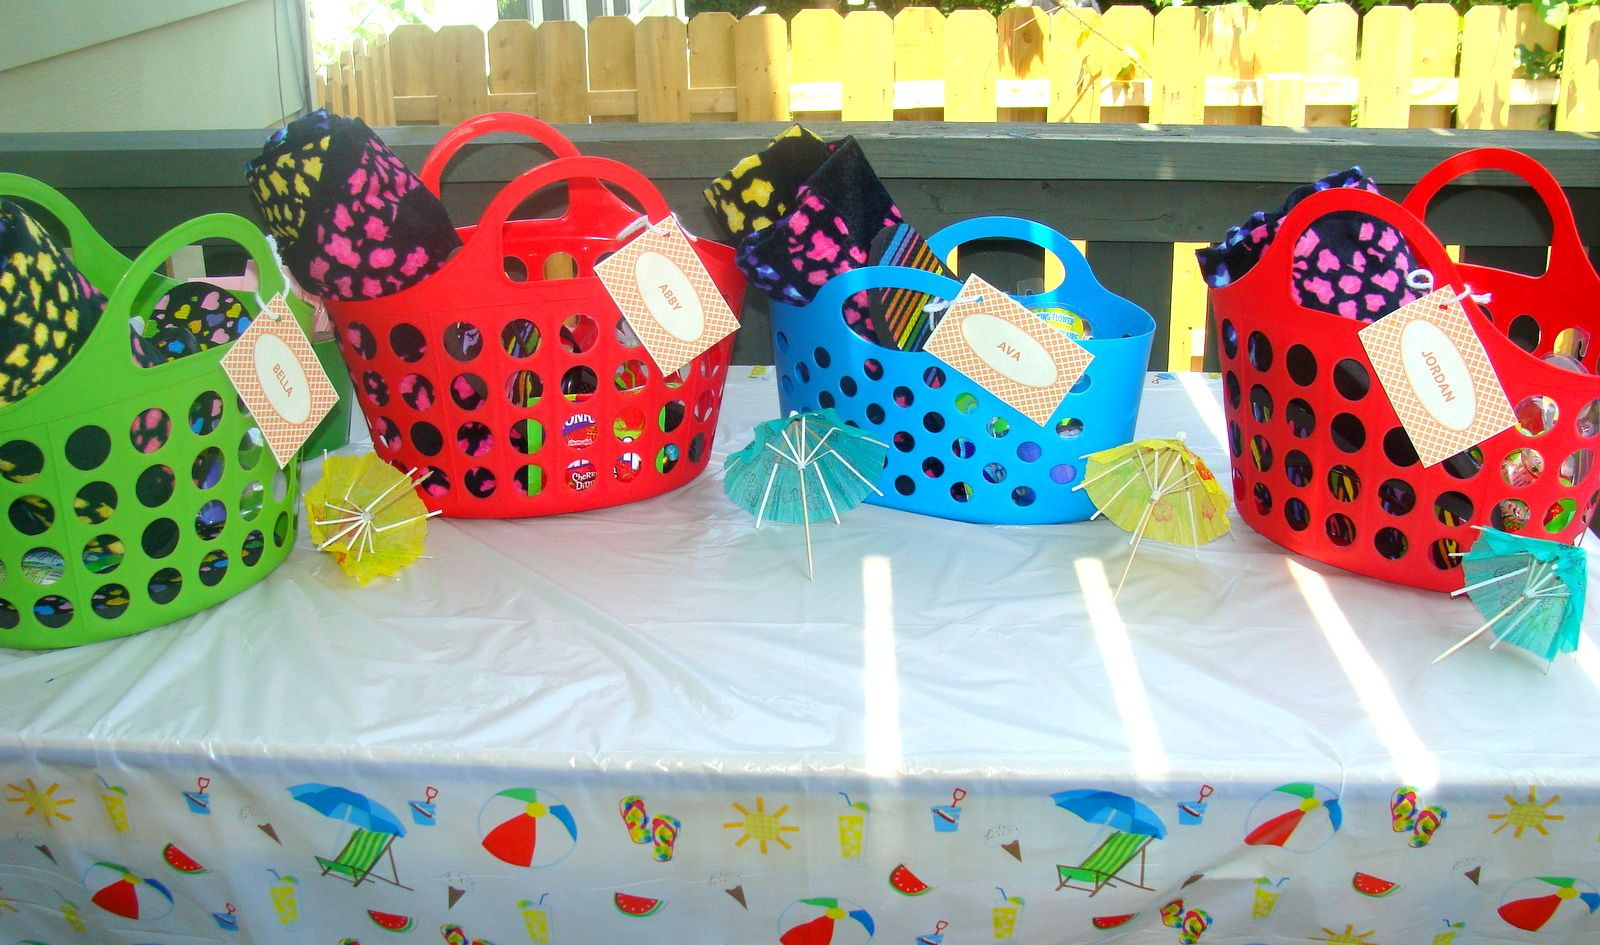 Best ideas about Pool Gift Ideas . Save or Pin pool party t baskets beach towels flip flops treats Now.